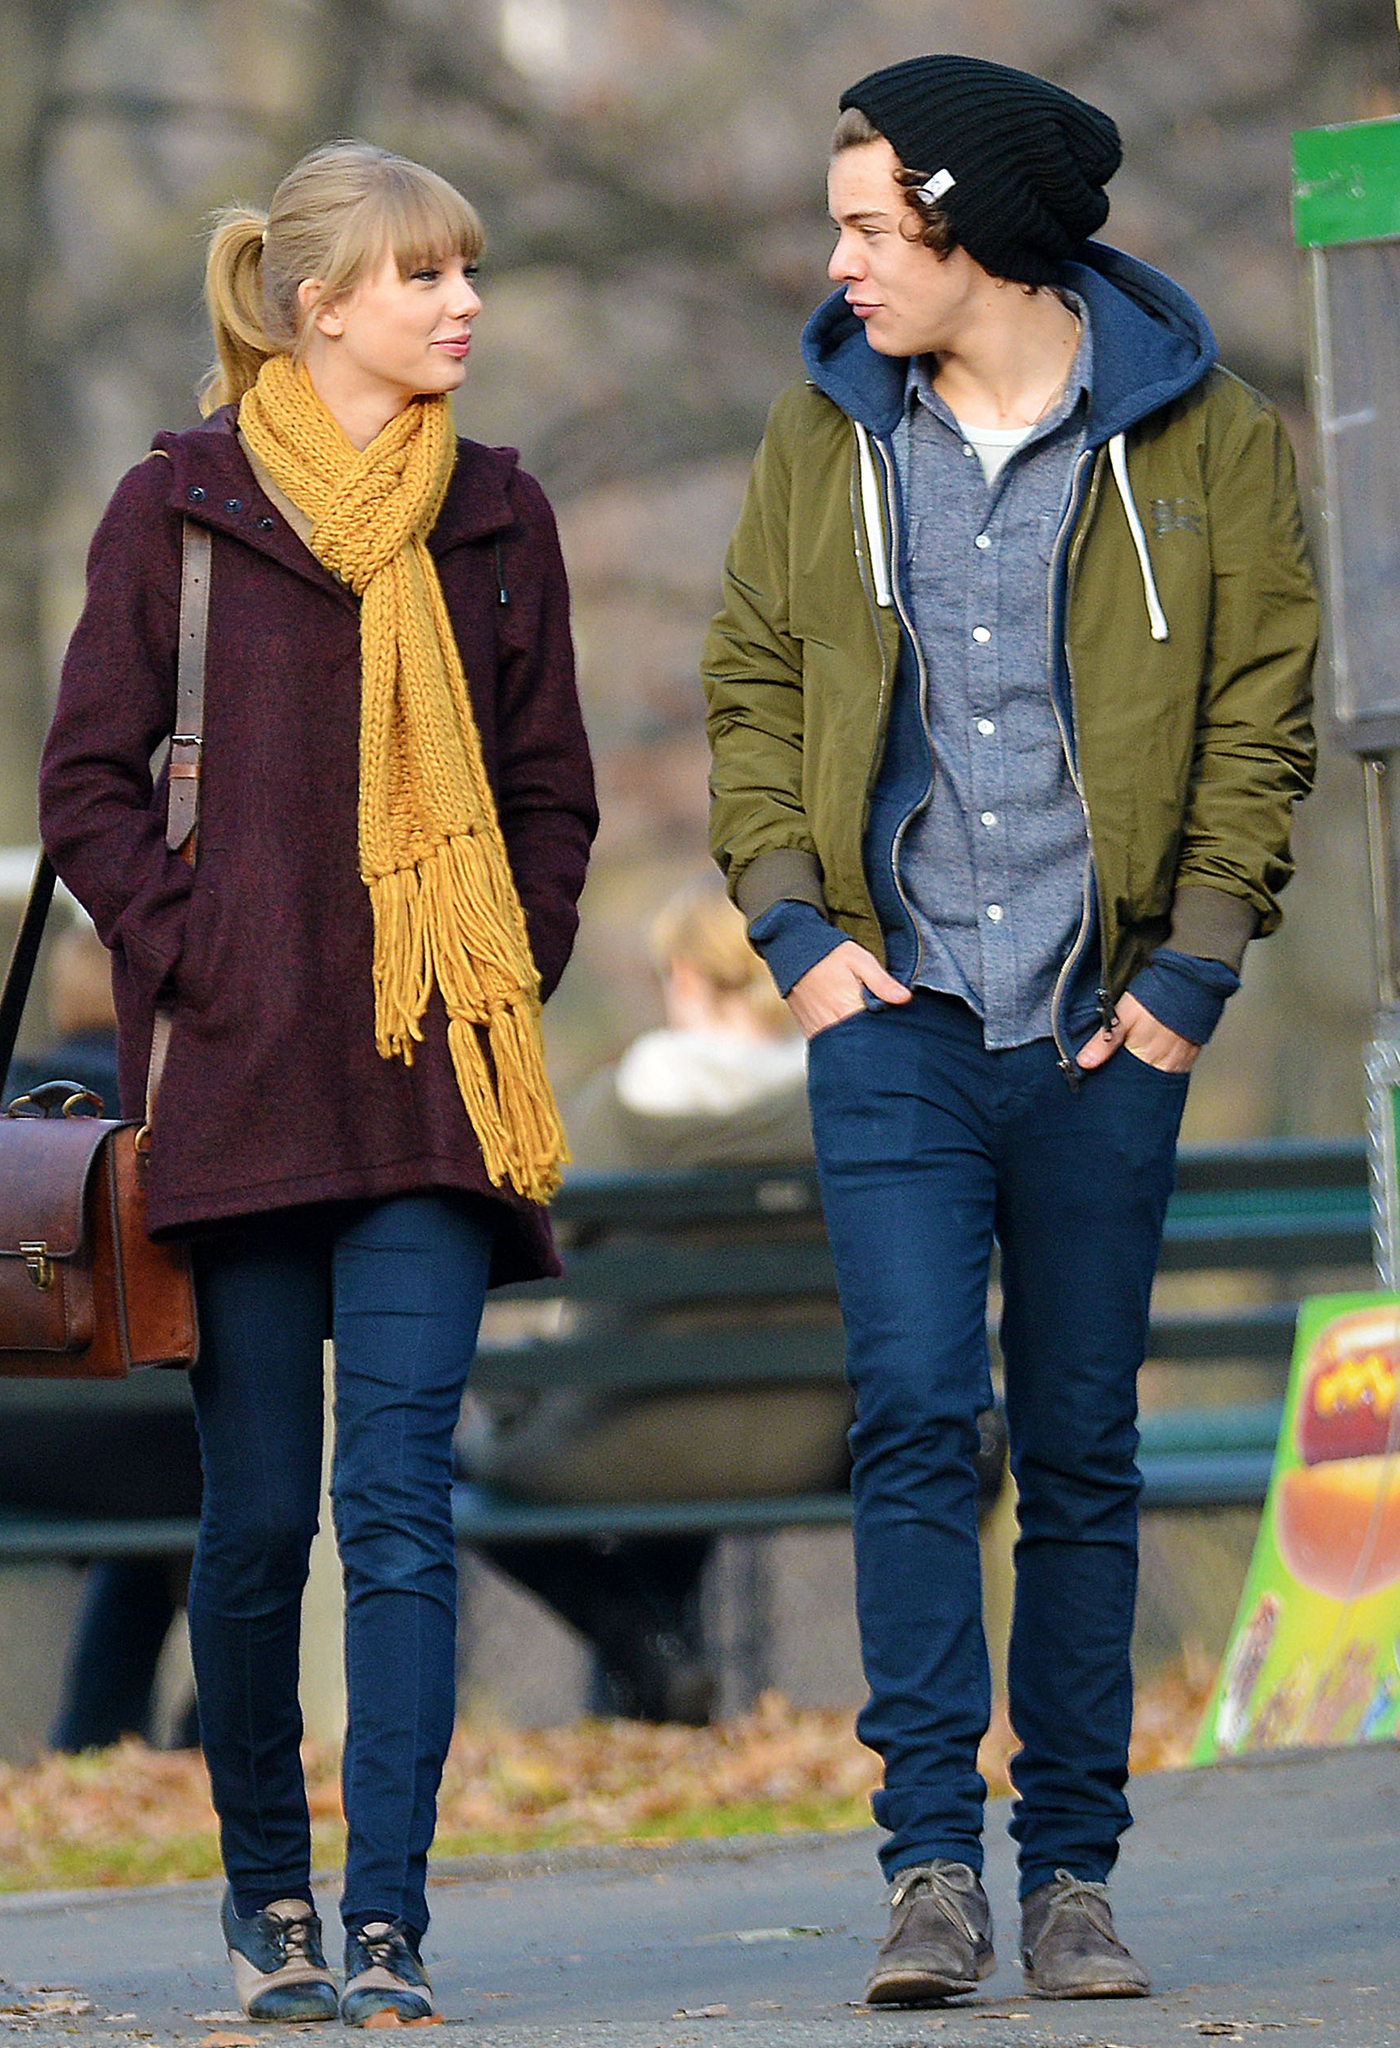 Taylor Swift and Harry Styles (Tom Meinelt/Splash News)